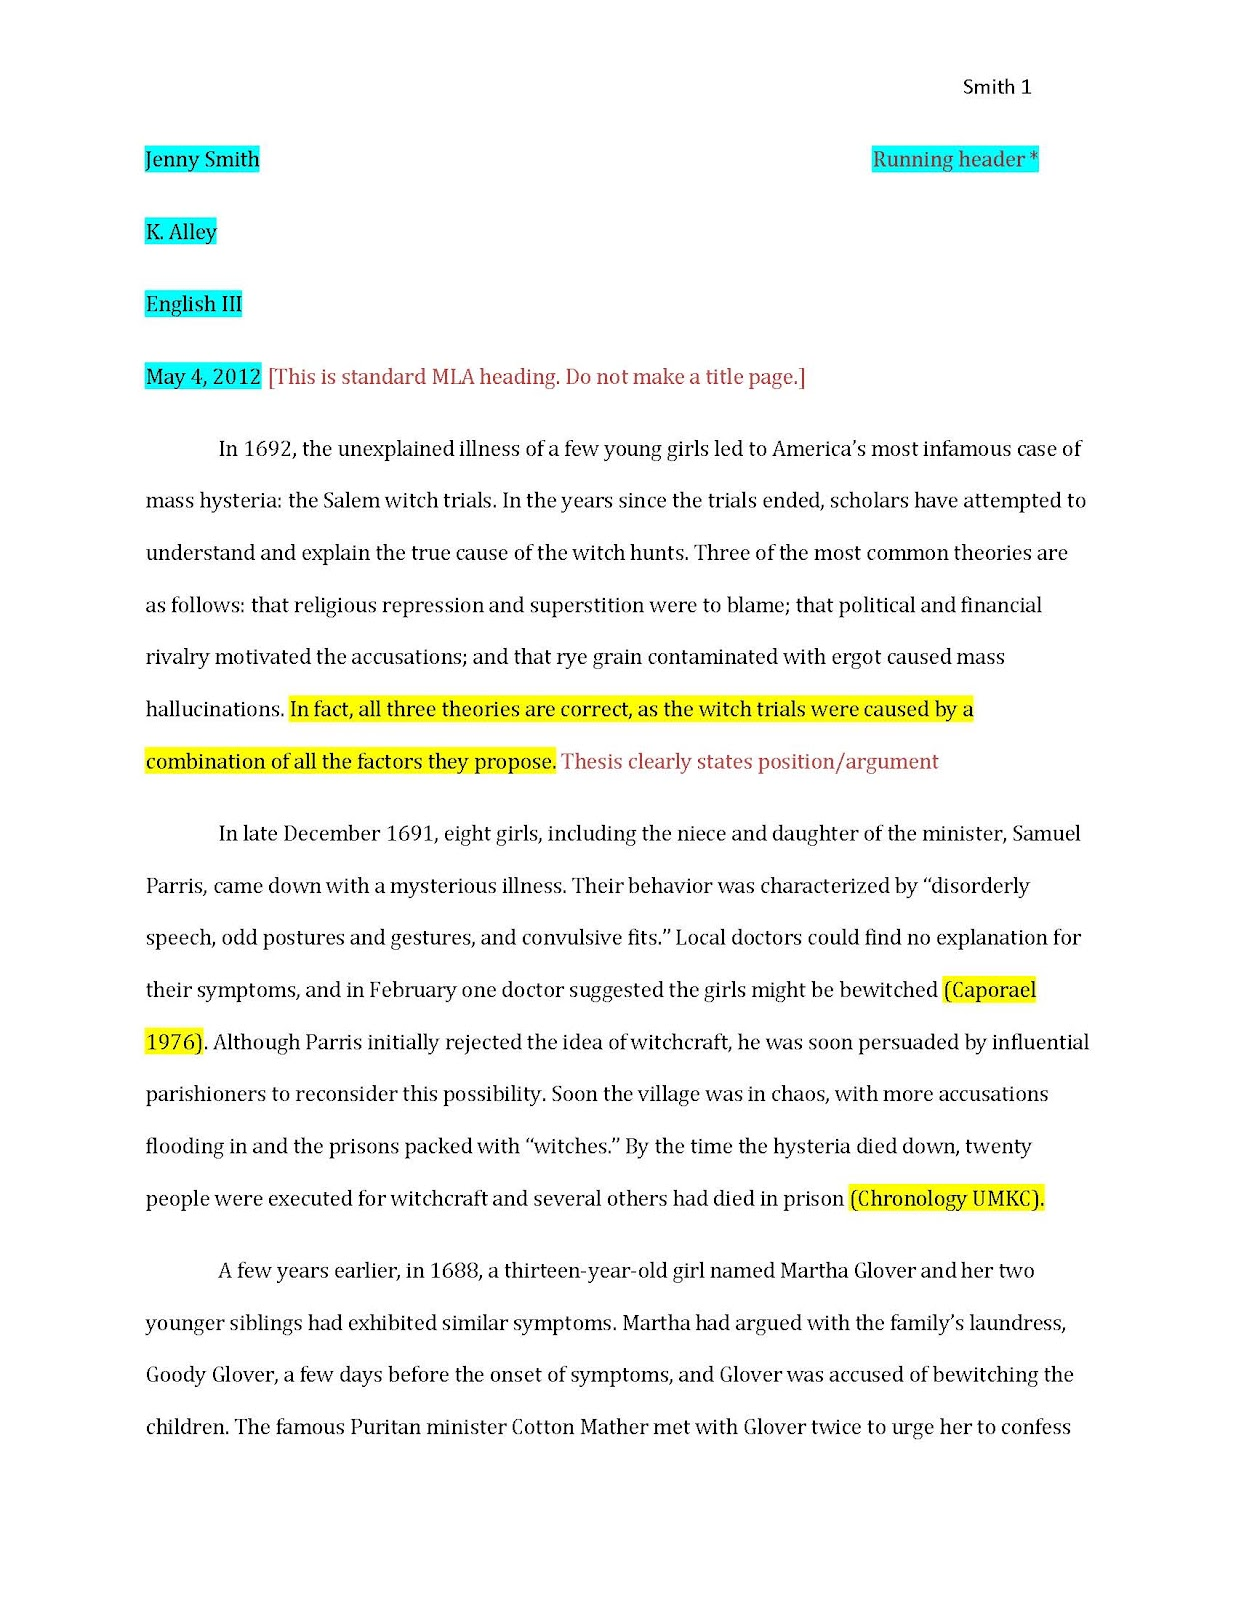 008 Research Paper Citations Examplepaper Page 1 Awful Citation Style Mla Citing Format Full